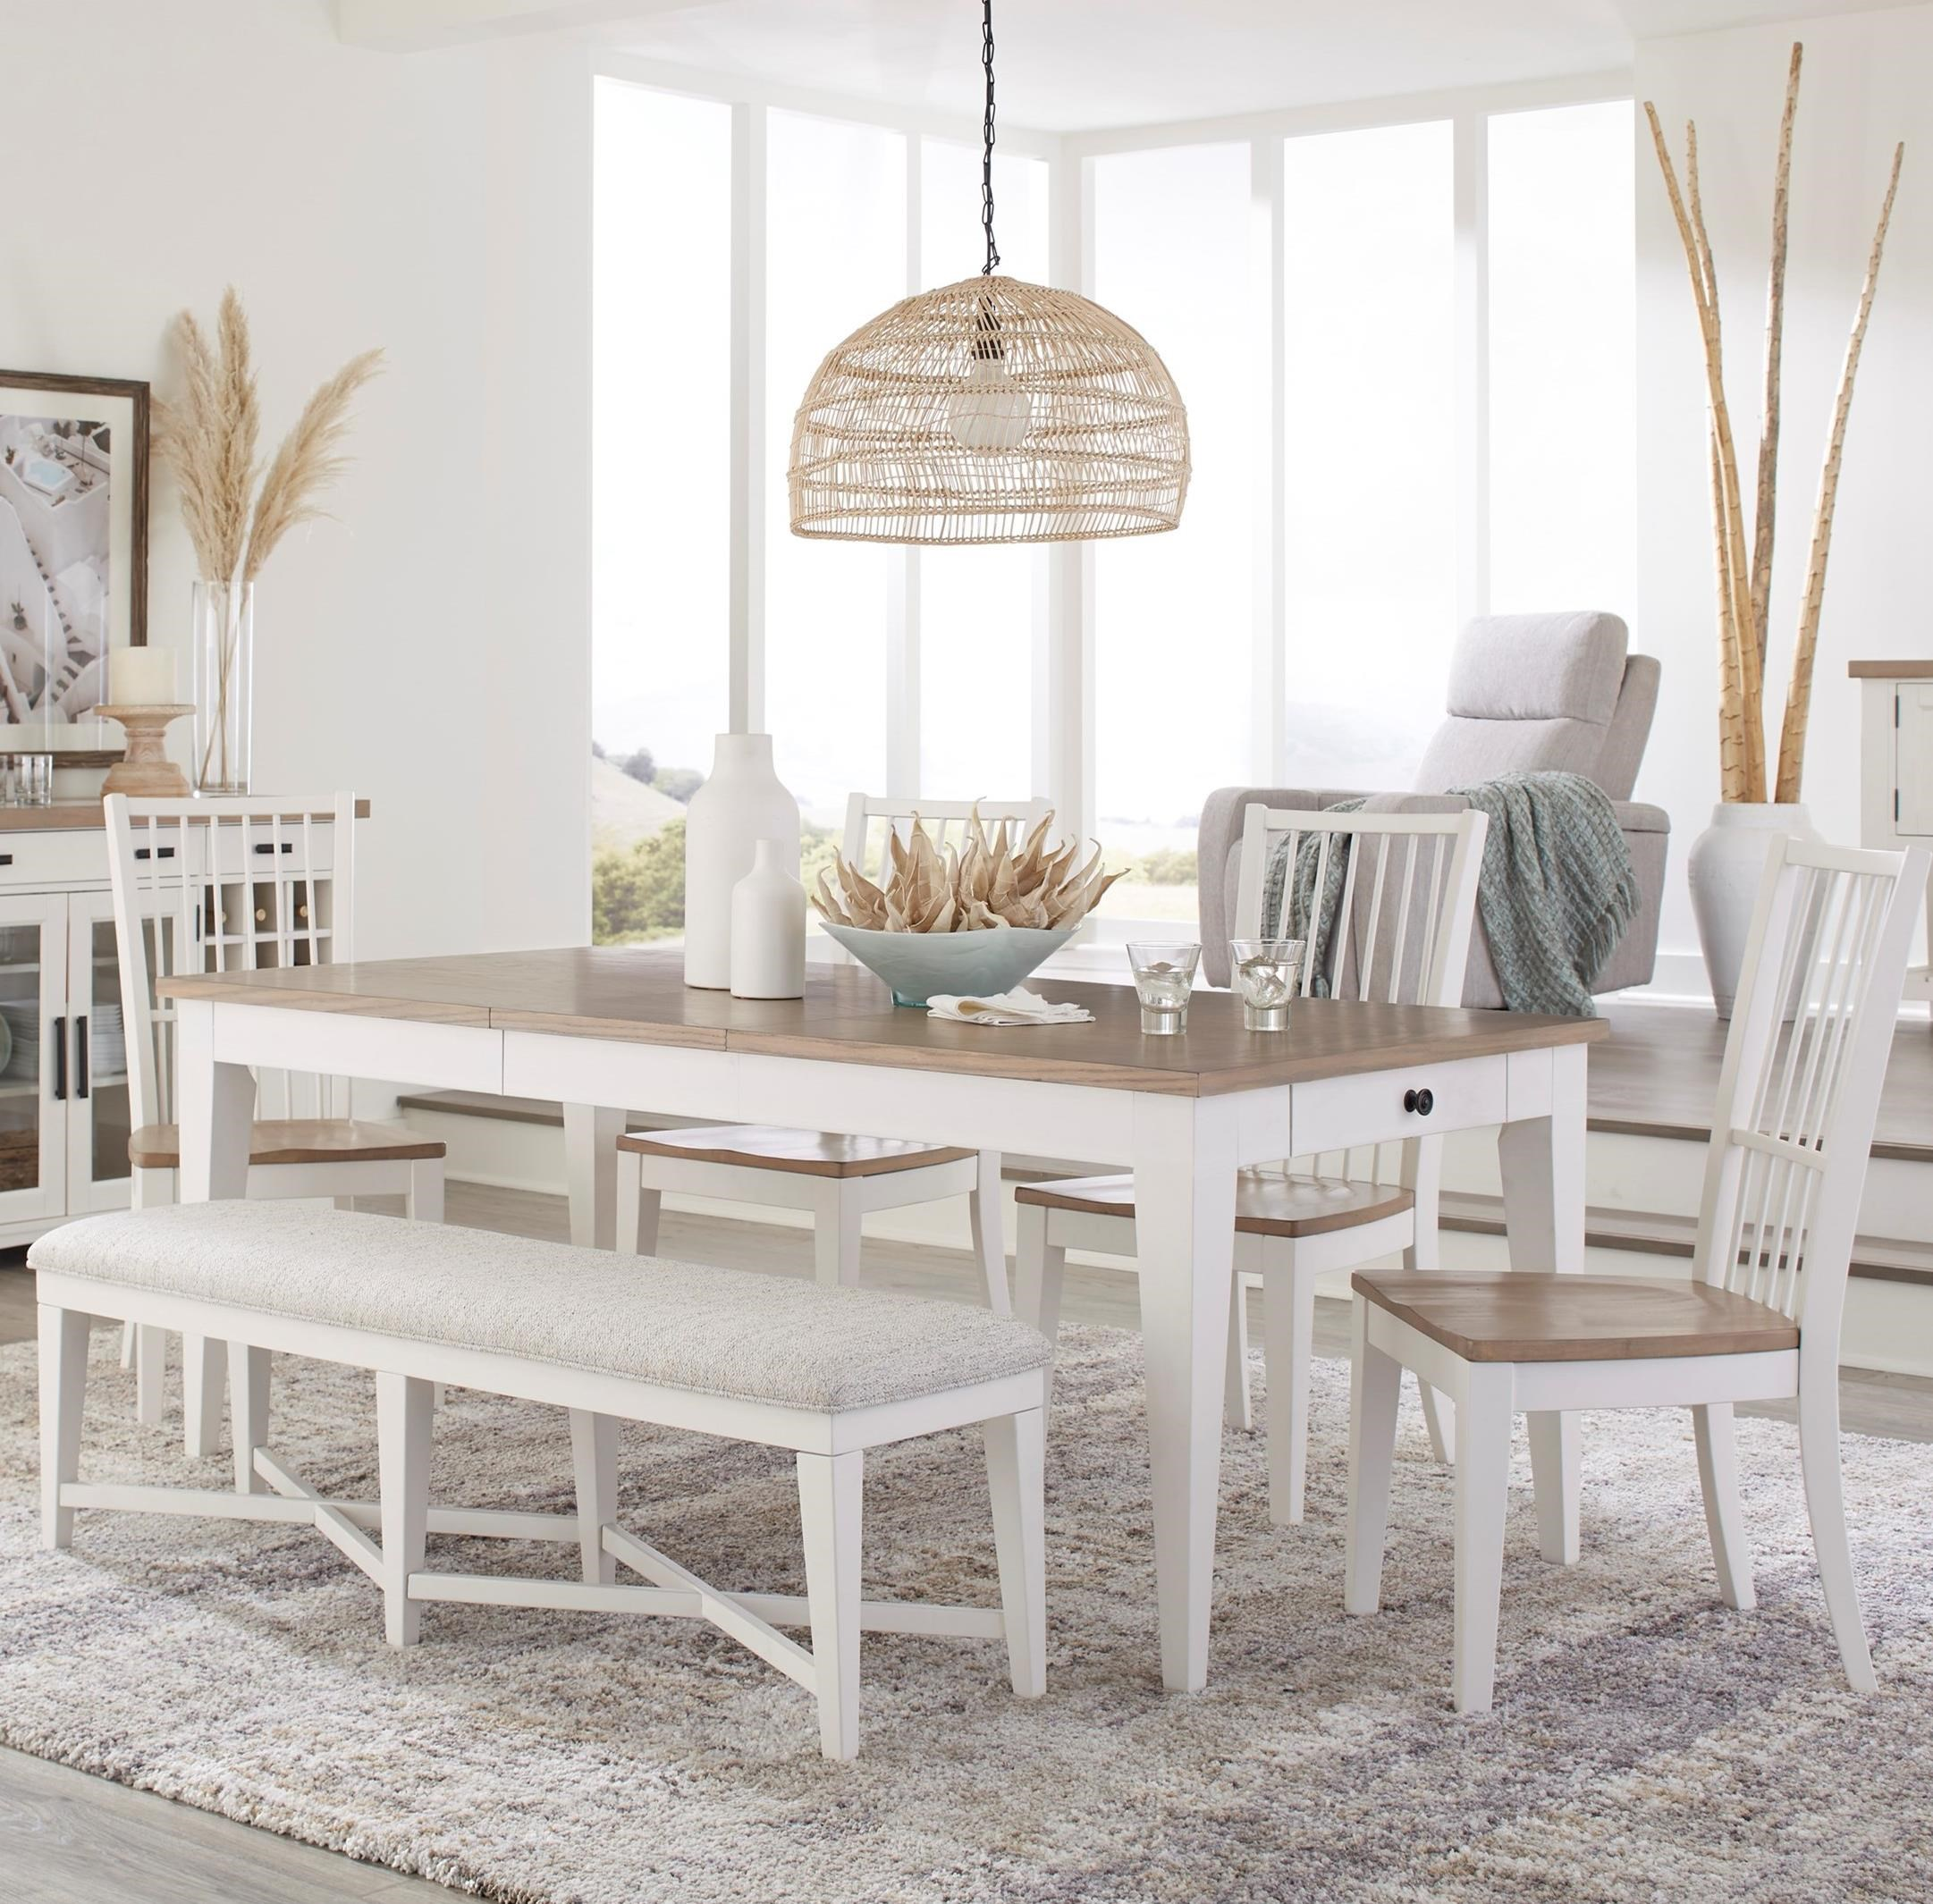 Americana Modern 6-Piece Dining Set with Bench by Parker House at Zak's Home